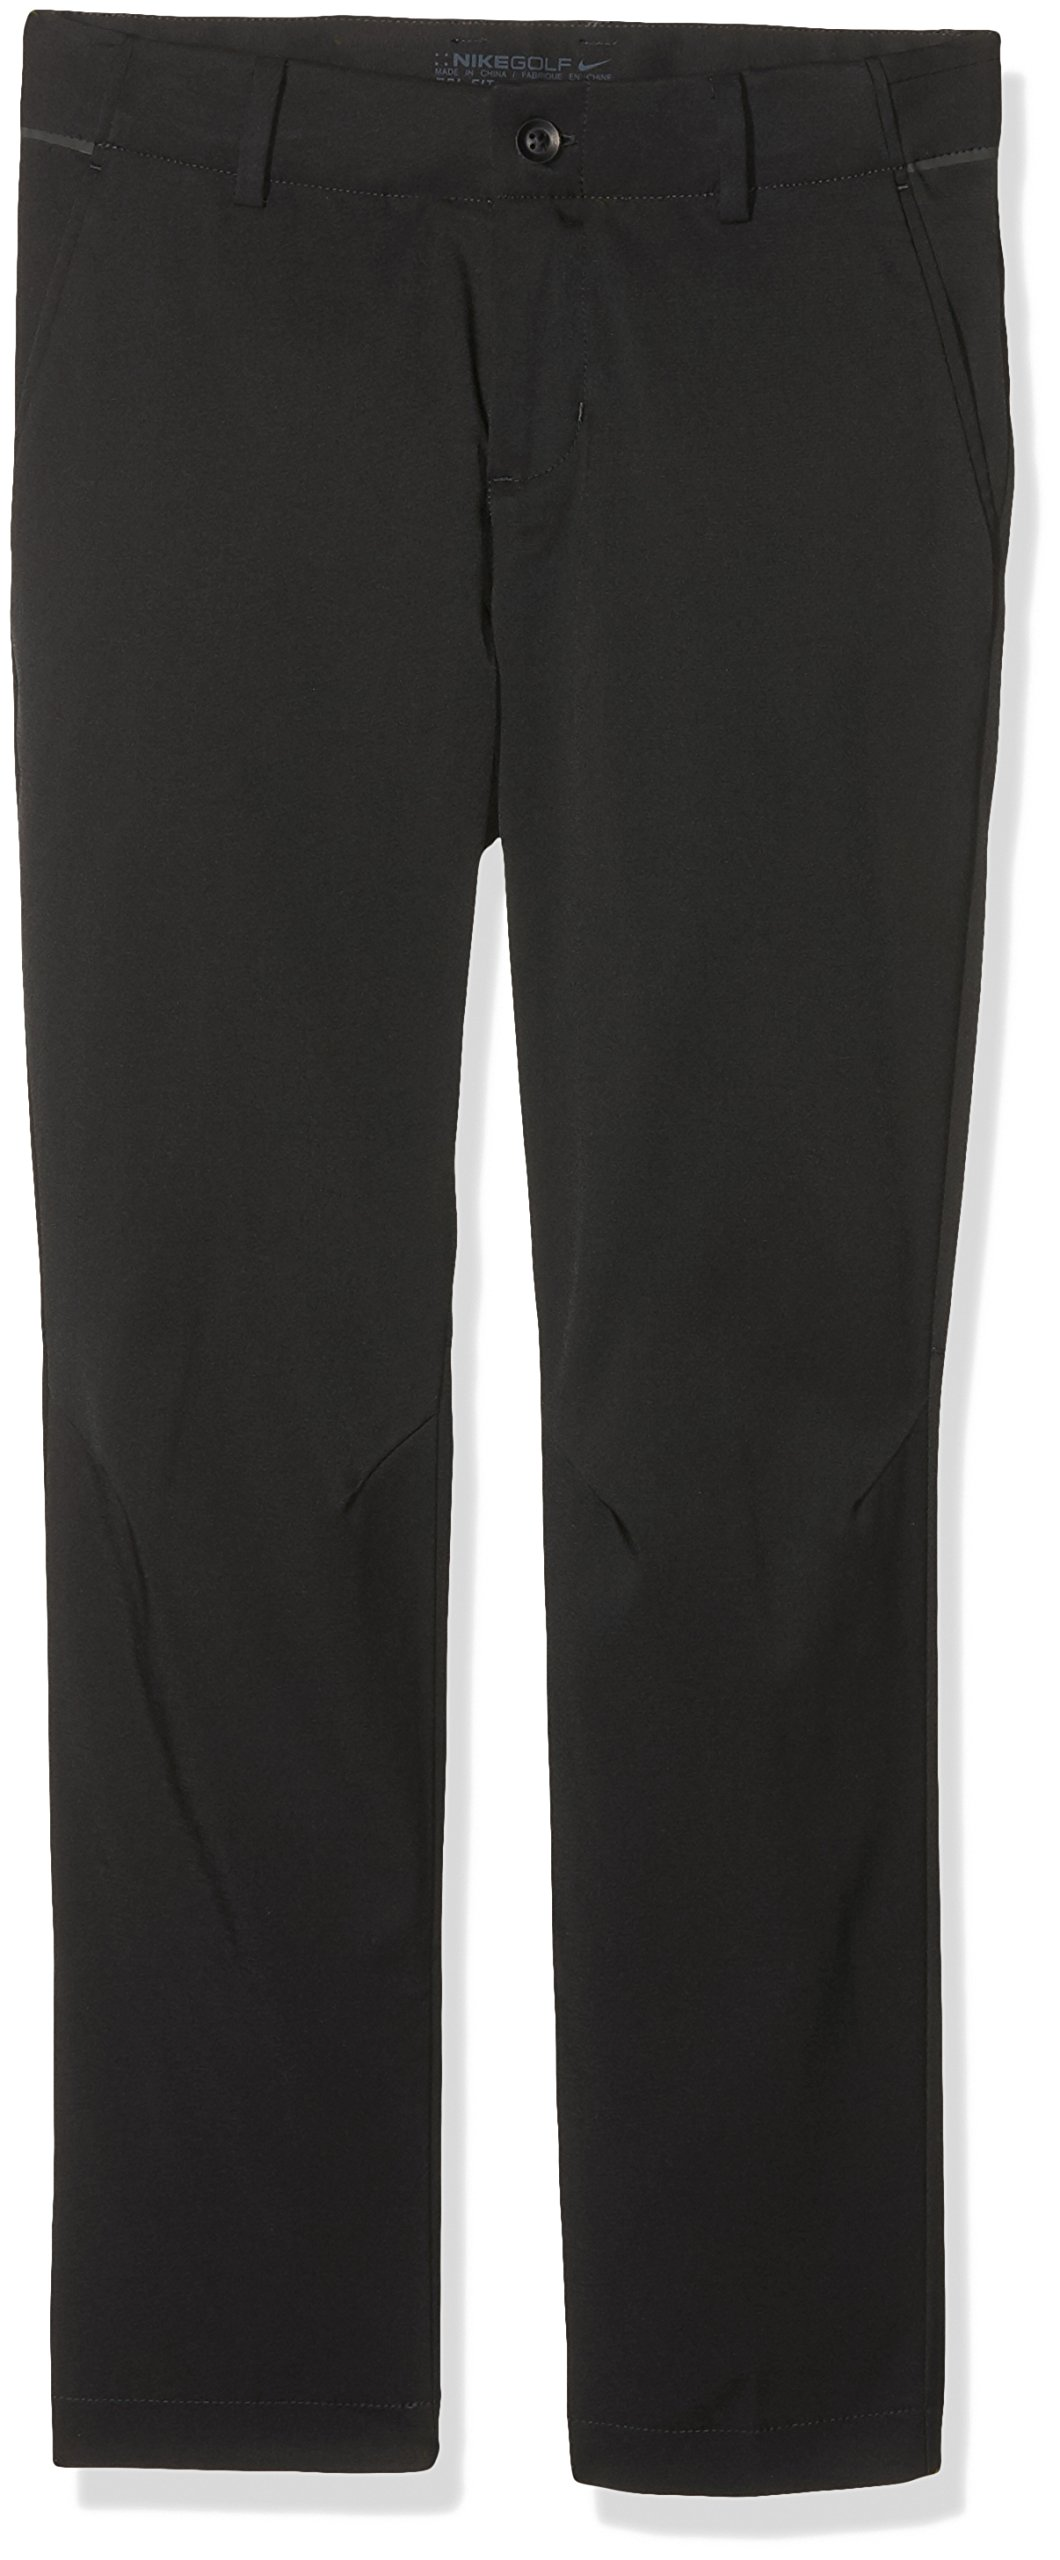 Nike Boys Flex Golf Pants (Medium, Black) by Nike